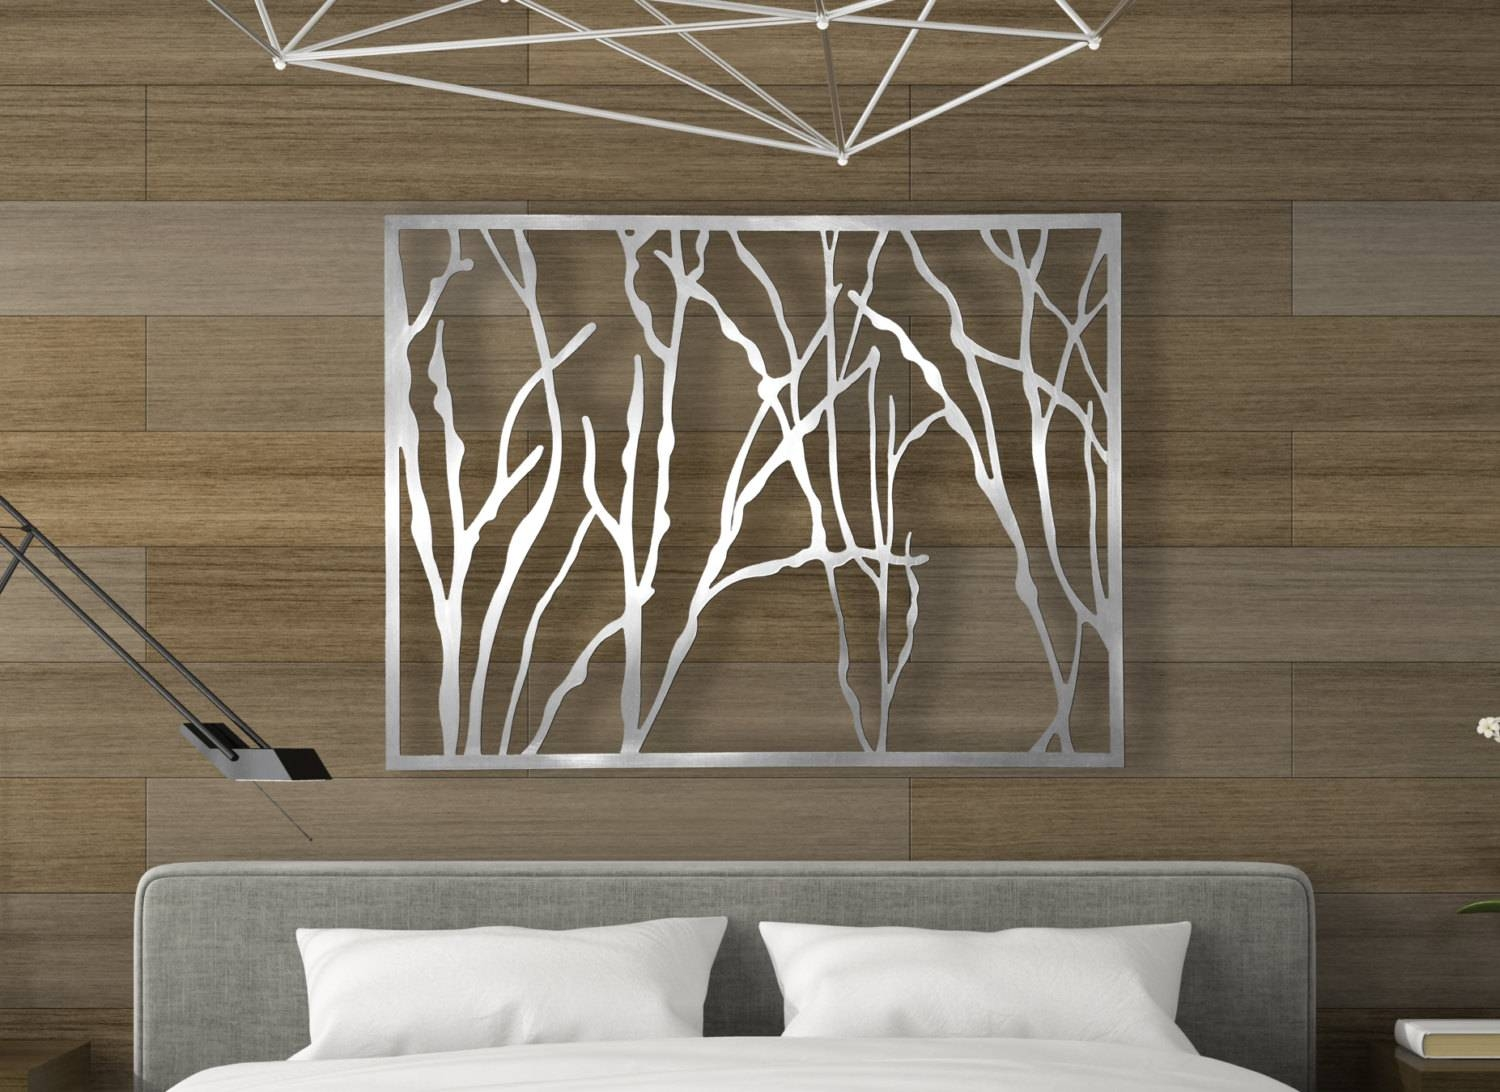 Wall Designs Best 20 43 Of Decorative Metal Wall Art Panels